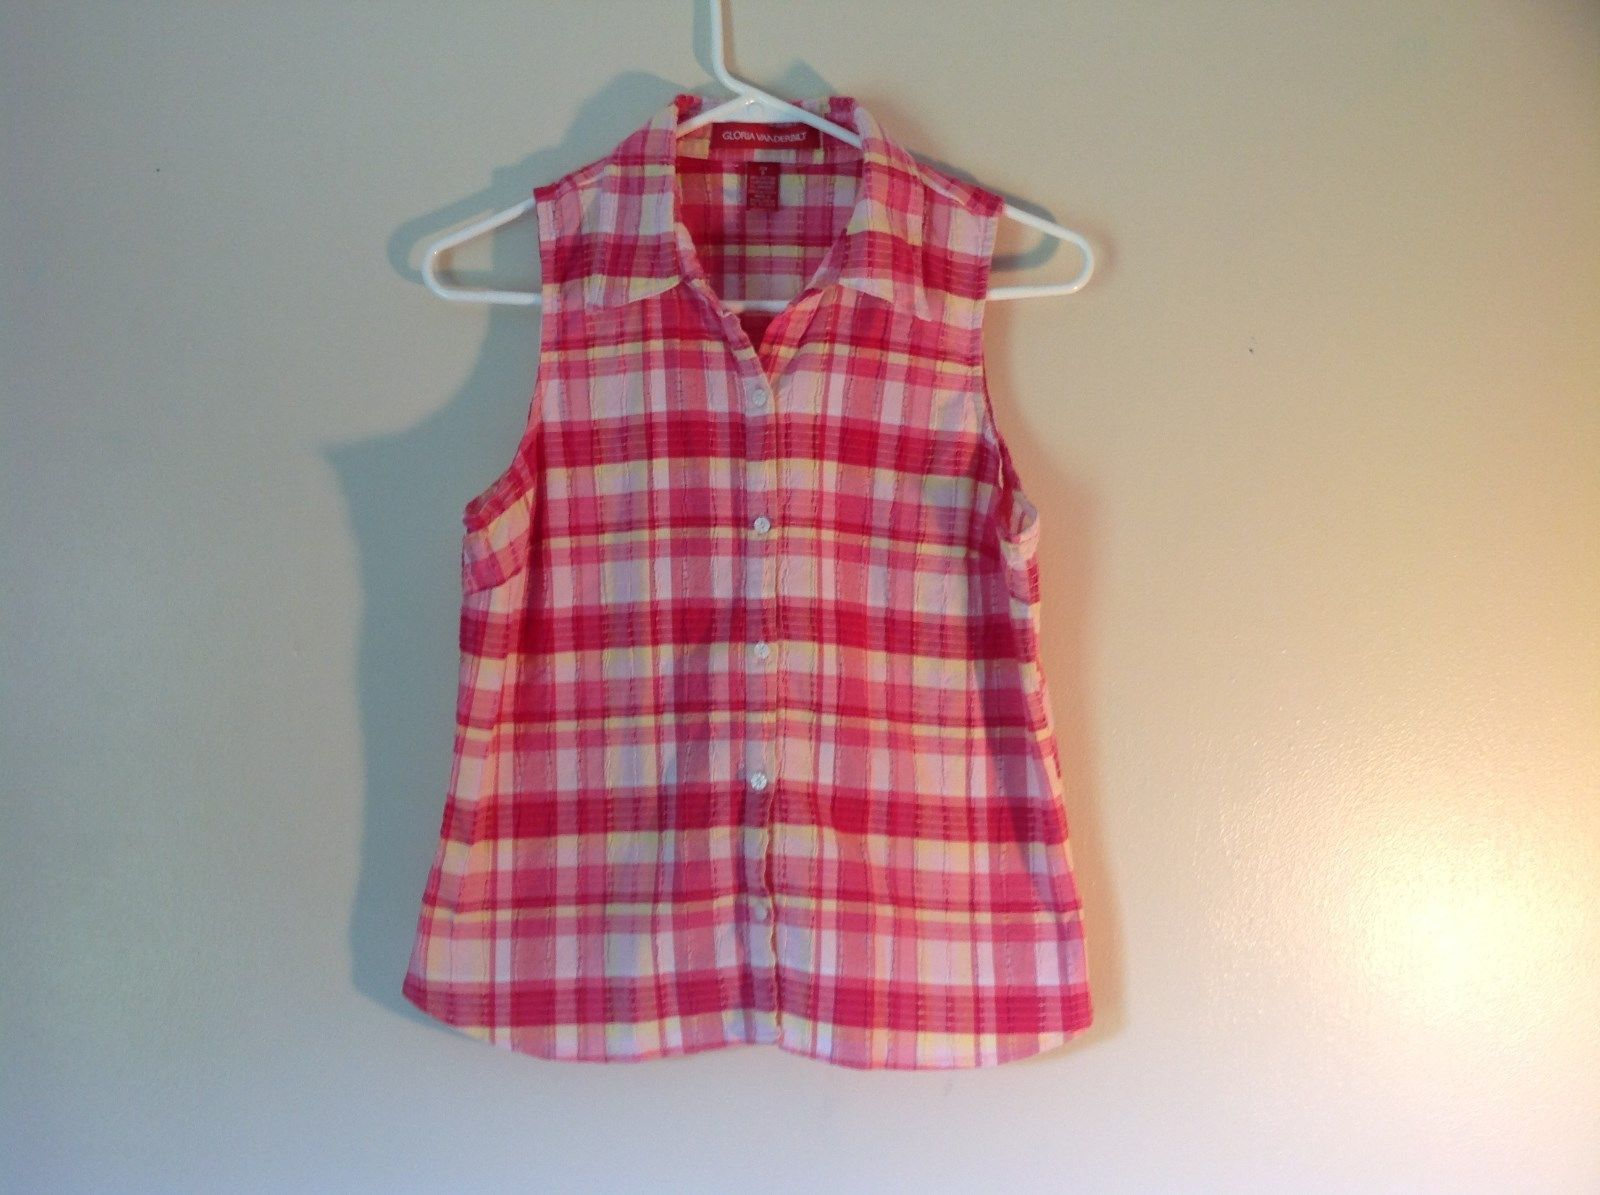 Pink Yellow Red Plaid Gloria Vanderbilt Sleeveless Button Down Blouse Size Small